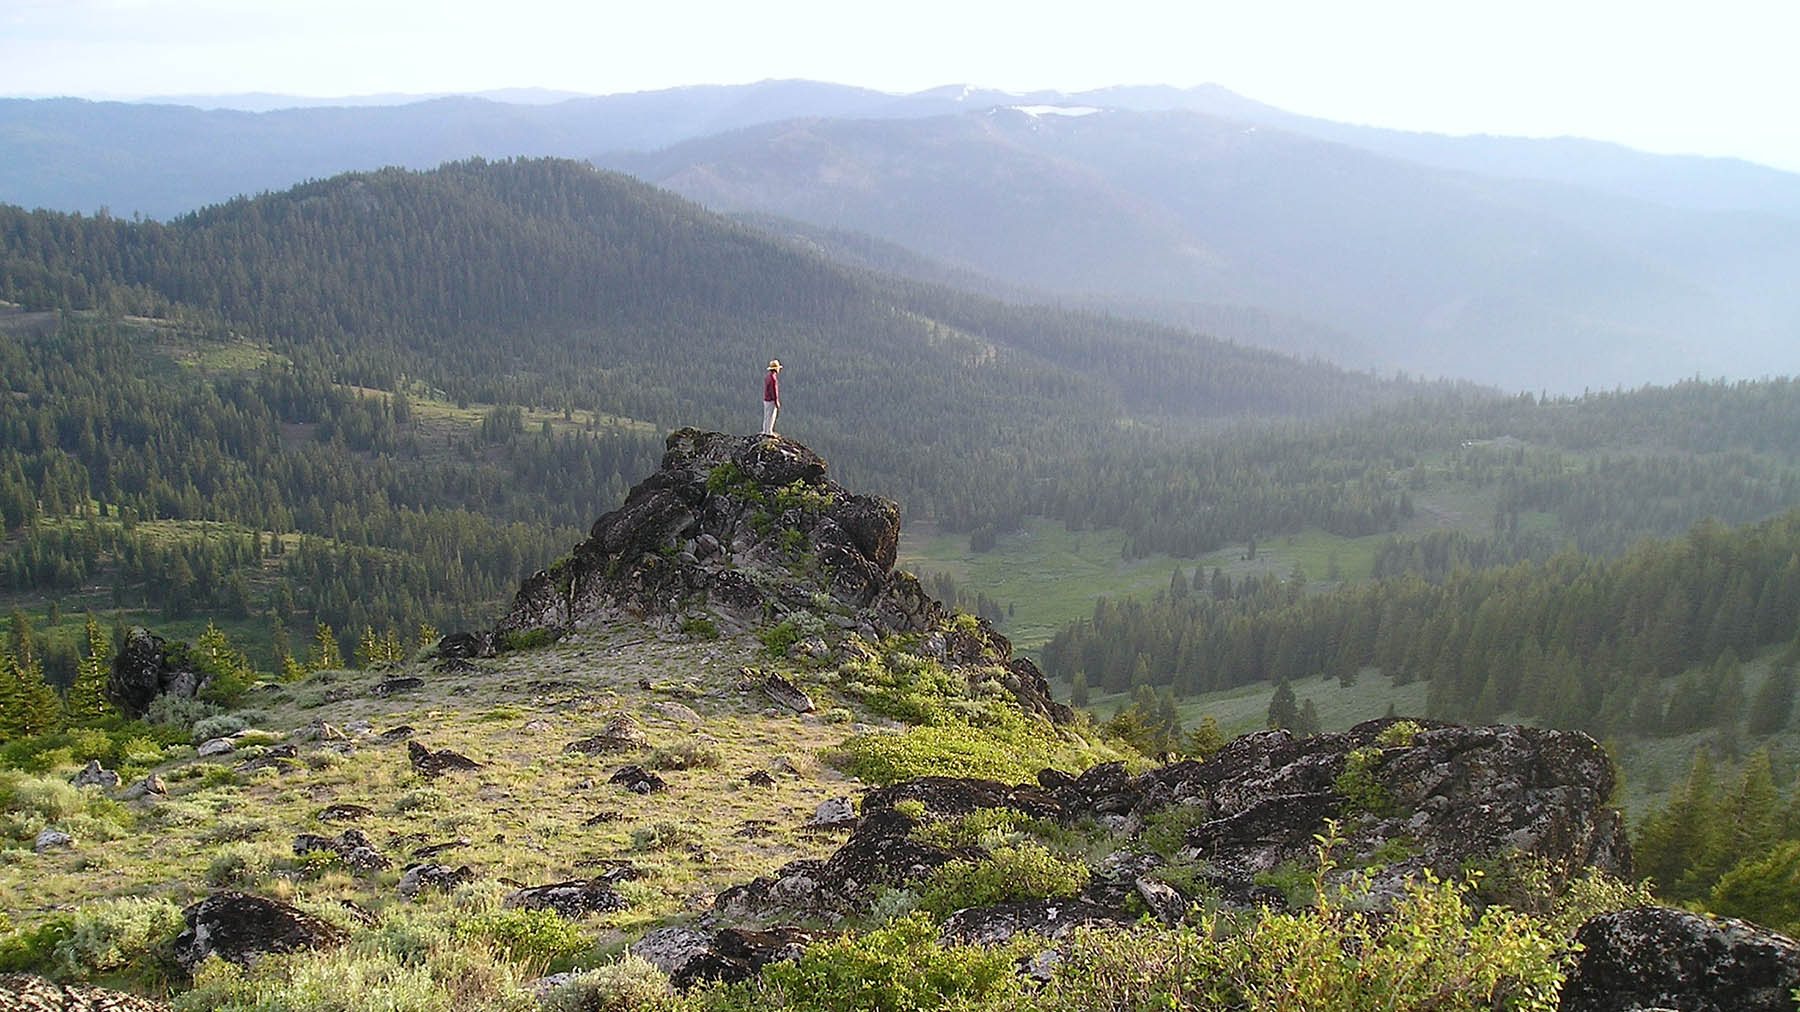 Discover - World-Renowned Biological Diversity in the Klamath-Siskiyou. Explore the public lands that make this region so special.